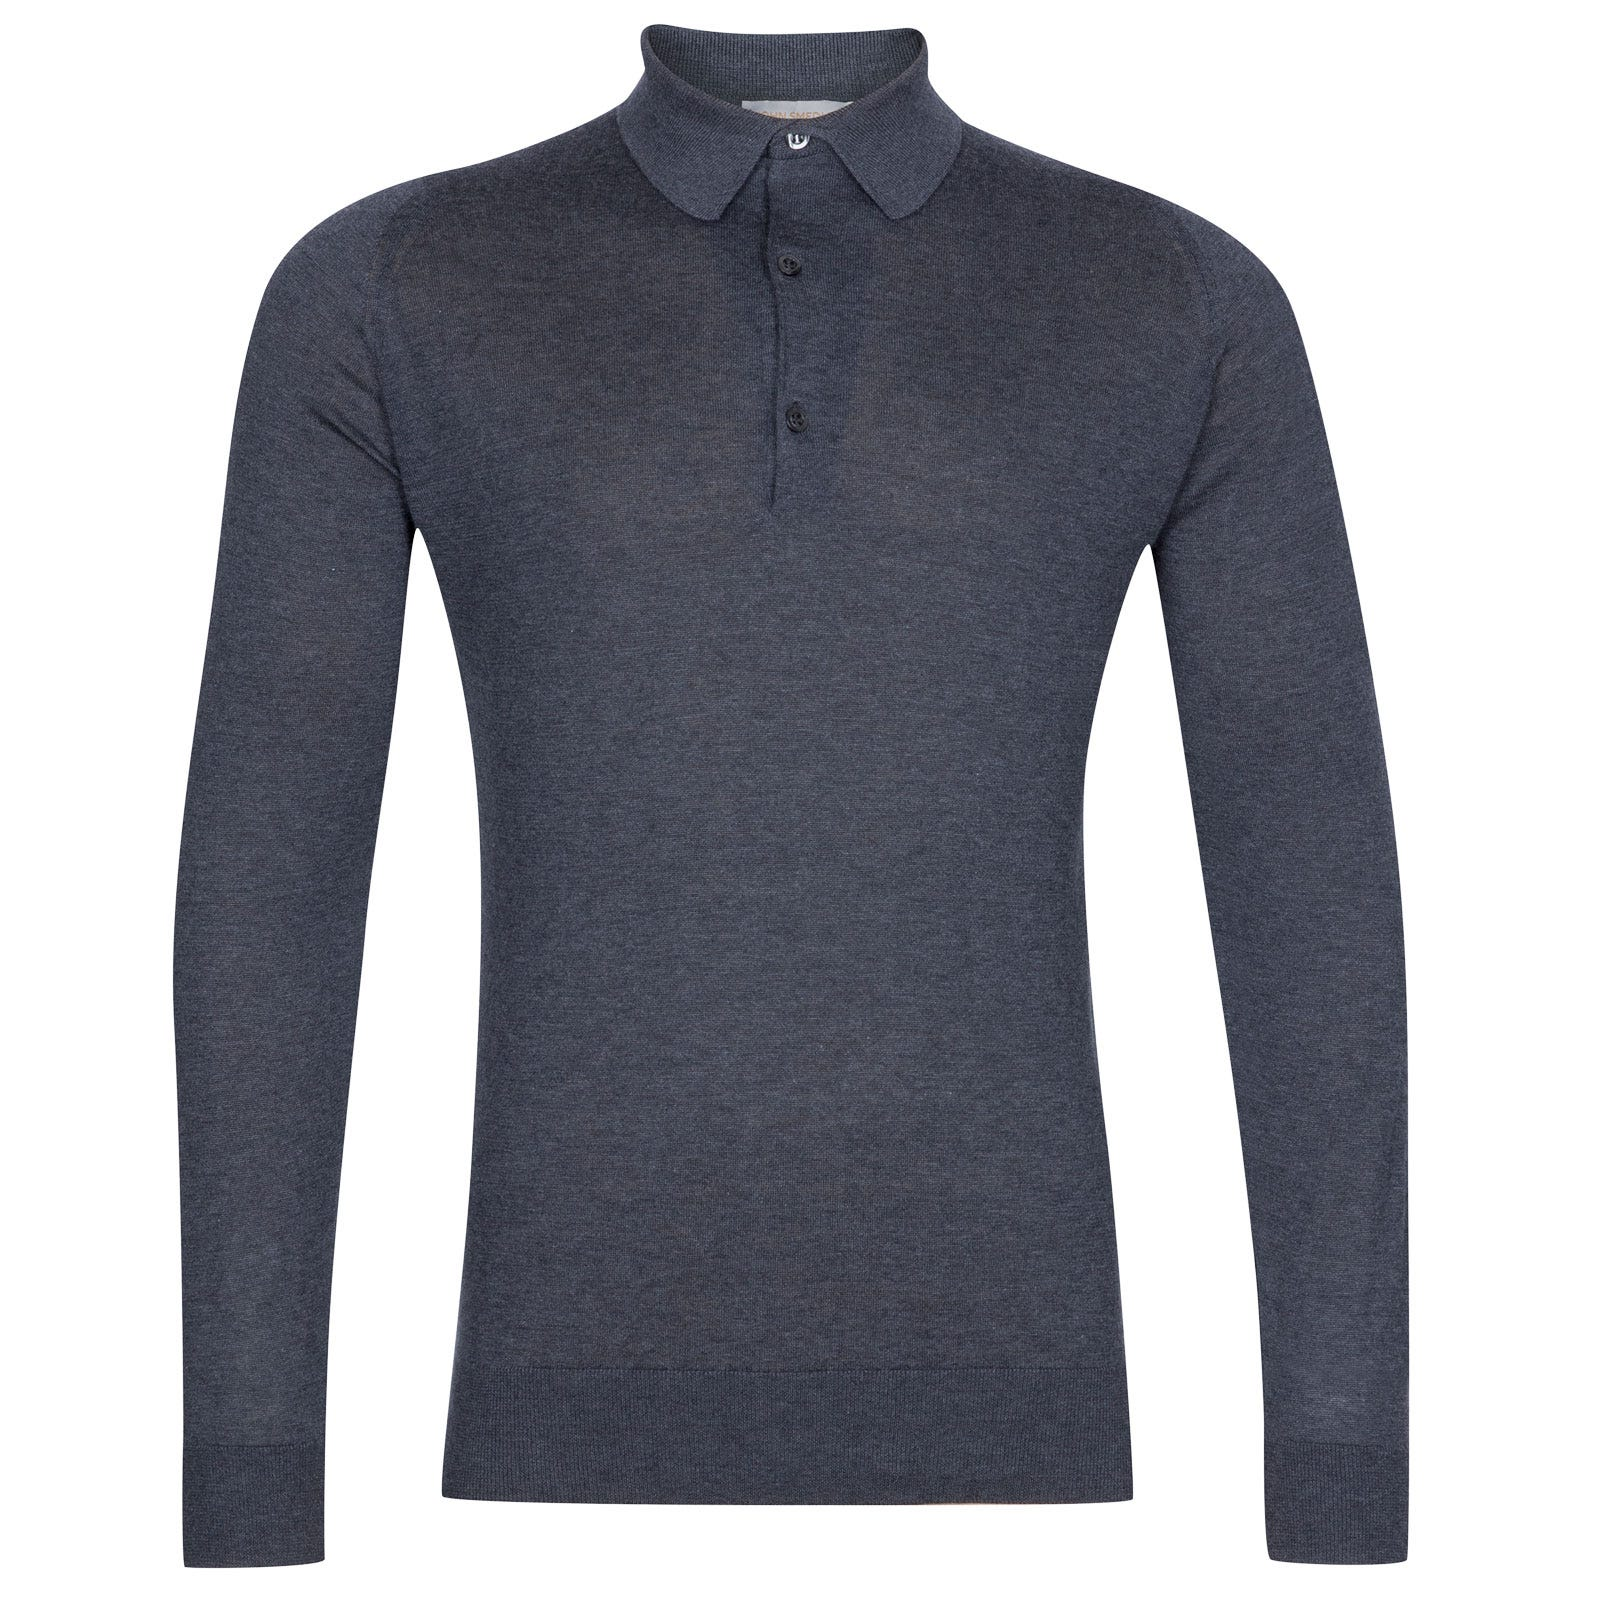 John Smedley Lanlay Sea Island Cotton and Cashmere Shirt in